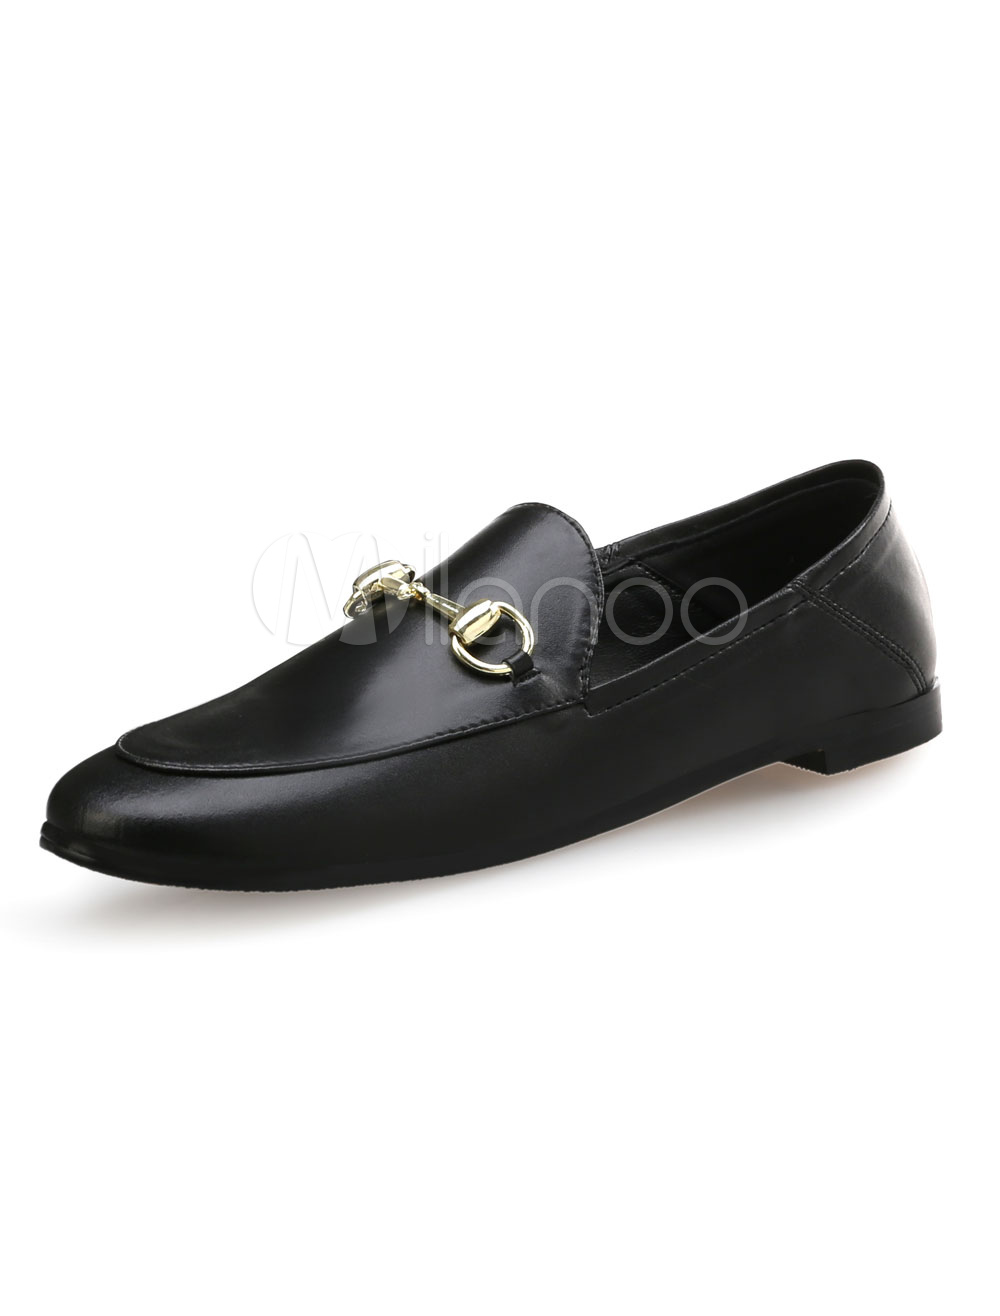 Buy Black Flat Loafers Women's Round Toe Metal Detail Slip On Flat Shoes for $37.99 in Milanoo store